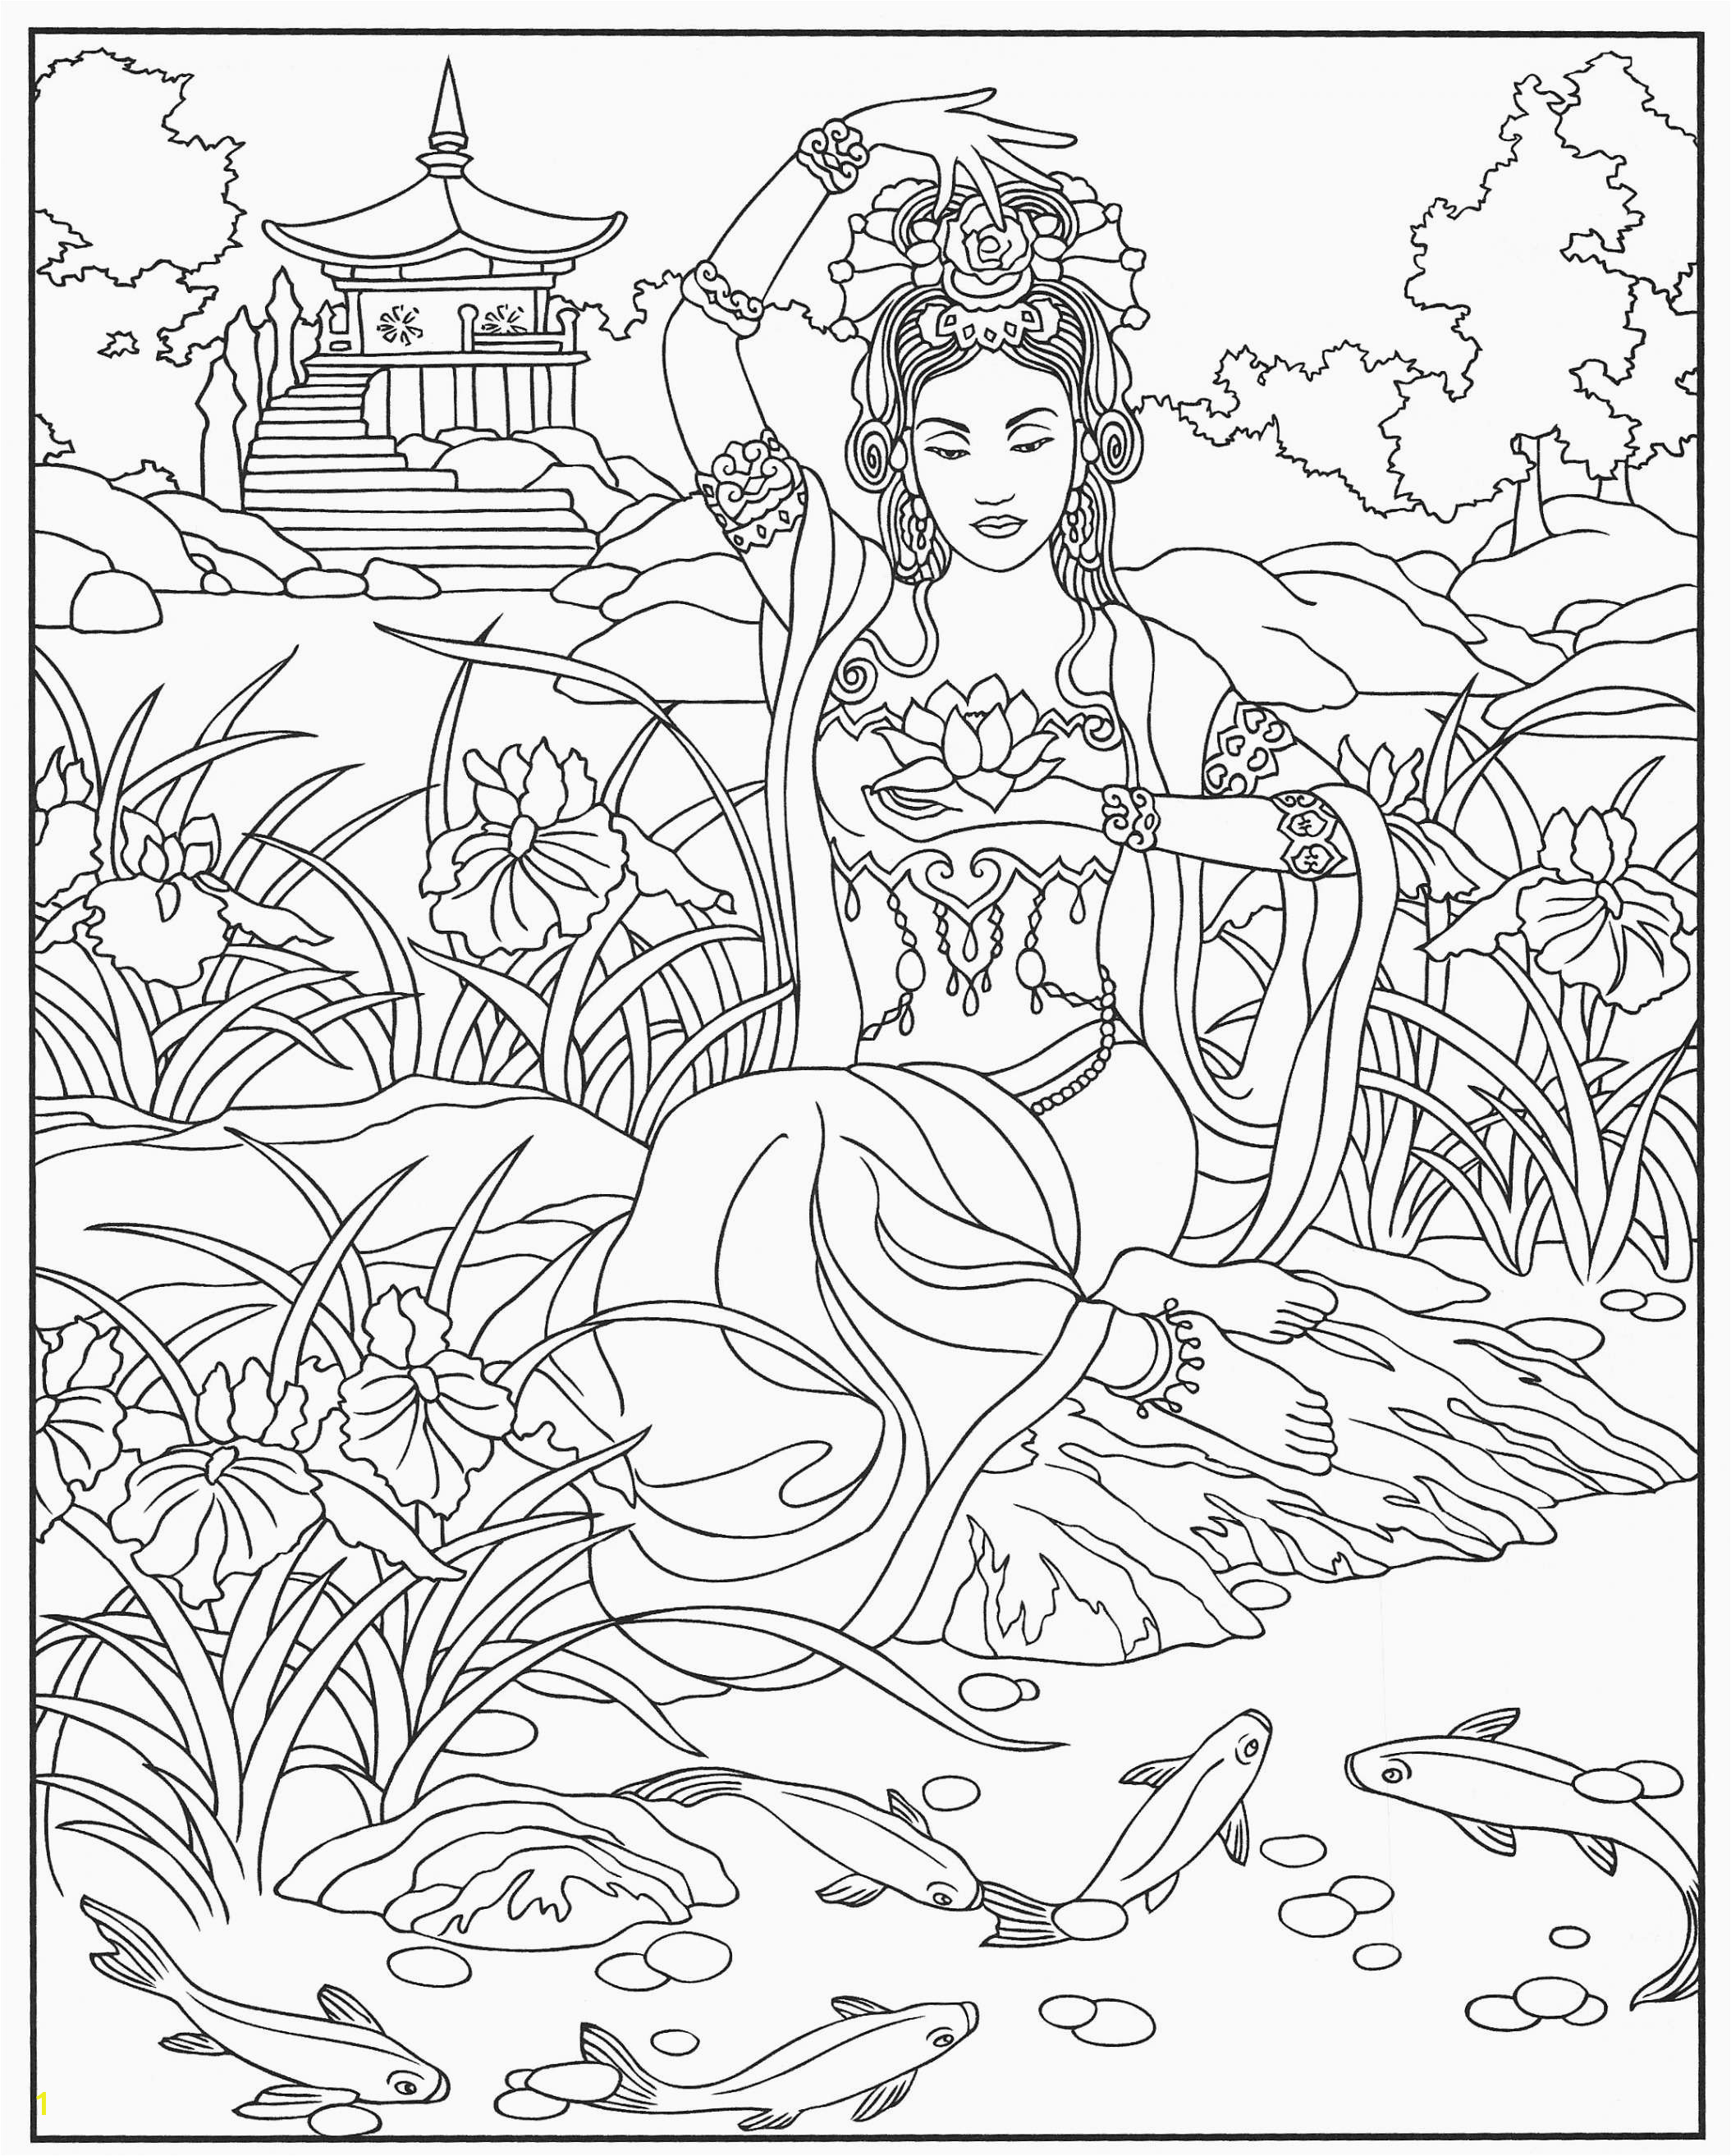 Elf Coloring Pages Crayola Christmas Coloring Pages Fresh Cool Coloring Page Unique Witch Coloring Pages